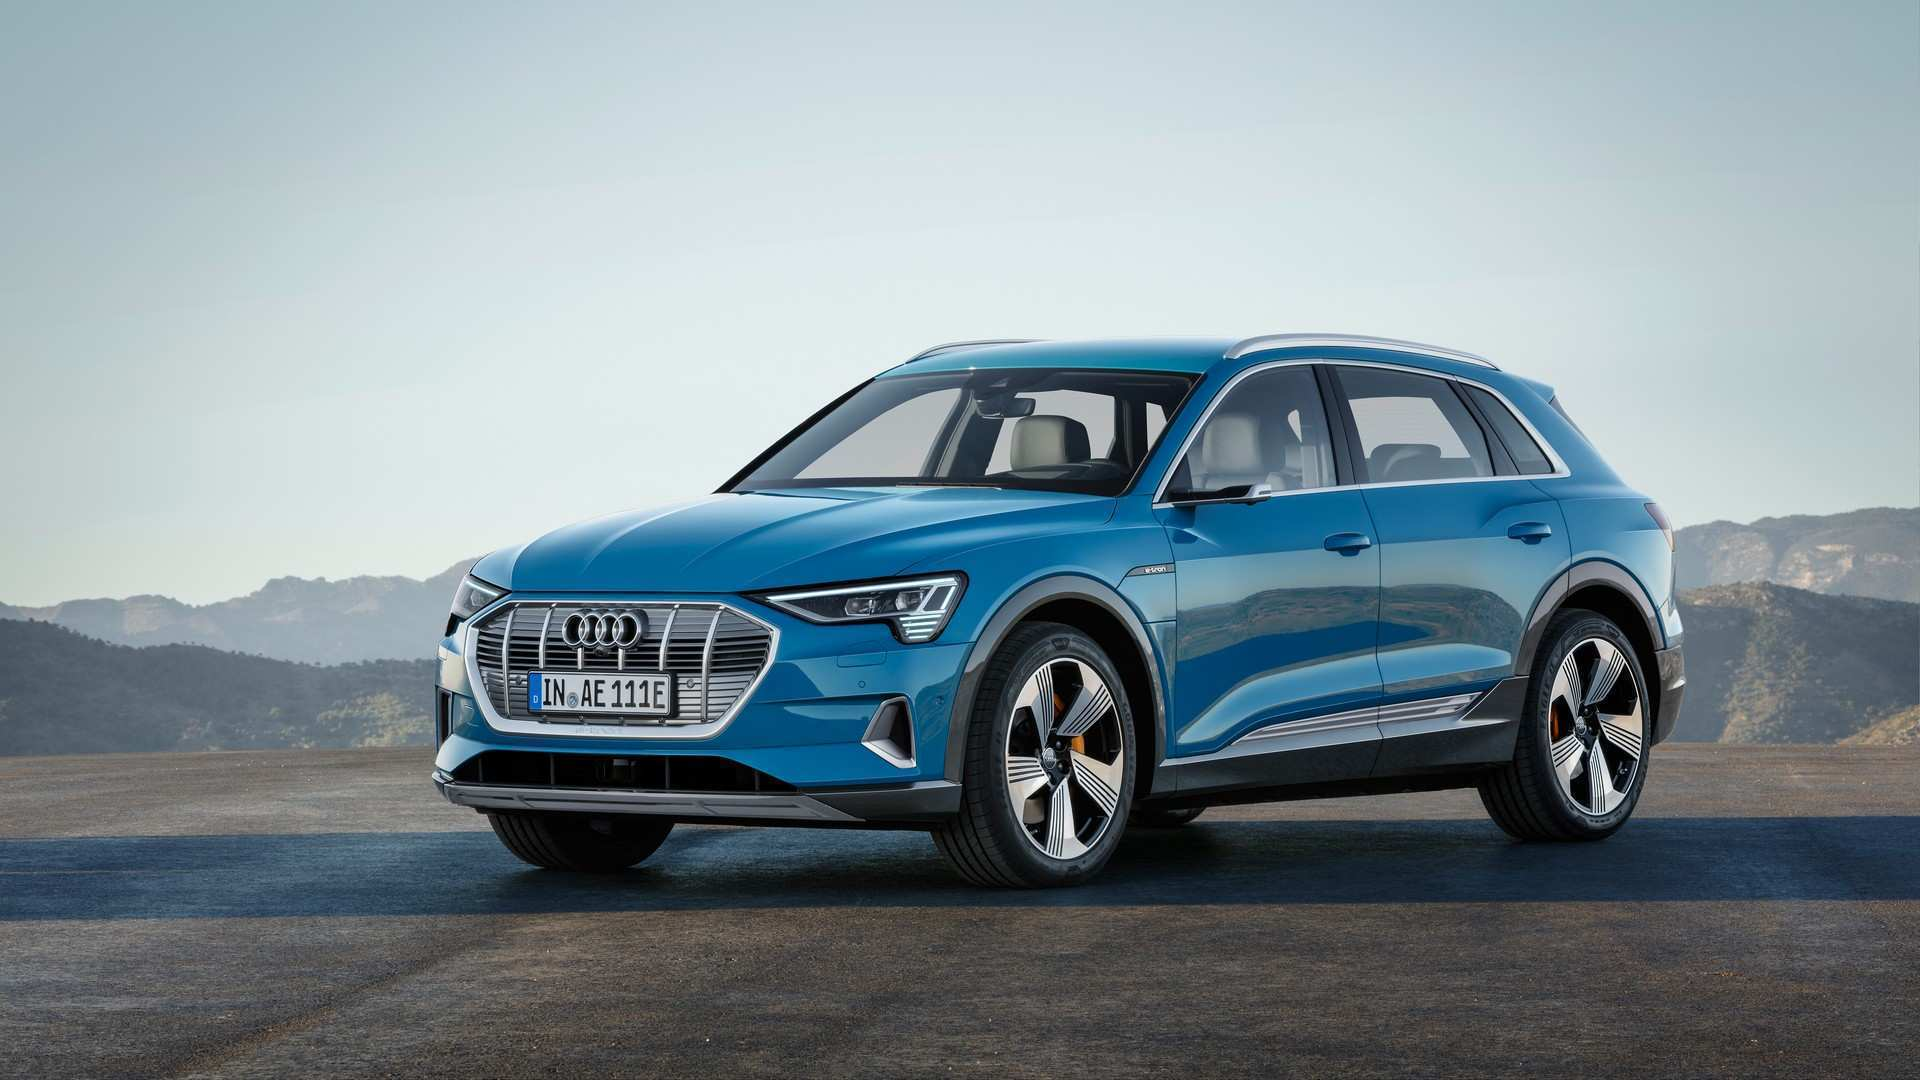 22 All New 2019 Audi E Tron Quattro Cost Configurations for 2019 Audi E Tron Quattro Cost